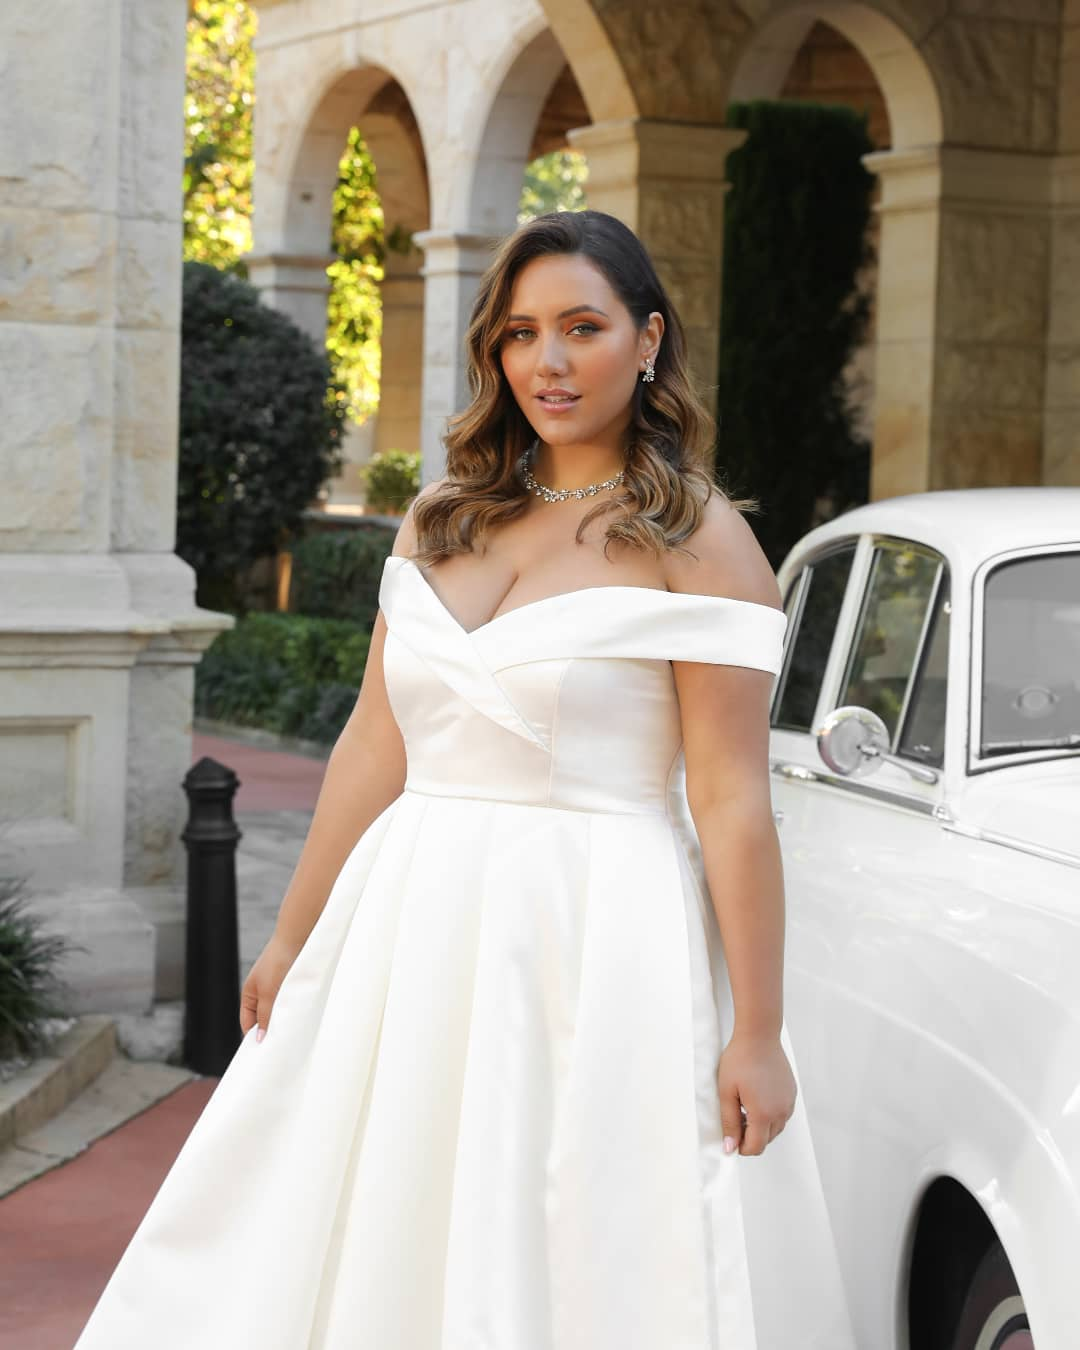 30 Perfect Plus Size Wedding Dresses And Bridal Gowns For Curvy Brides,Plus Size Long Sleeve Wedding Guest Dresses